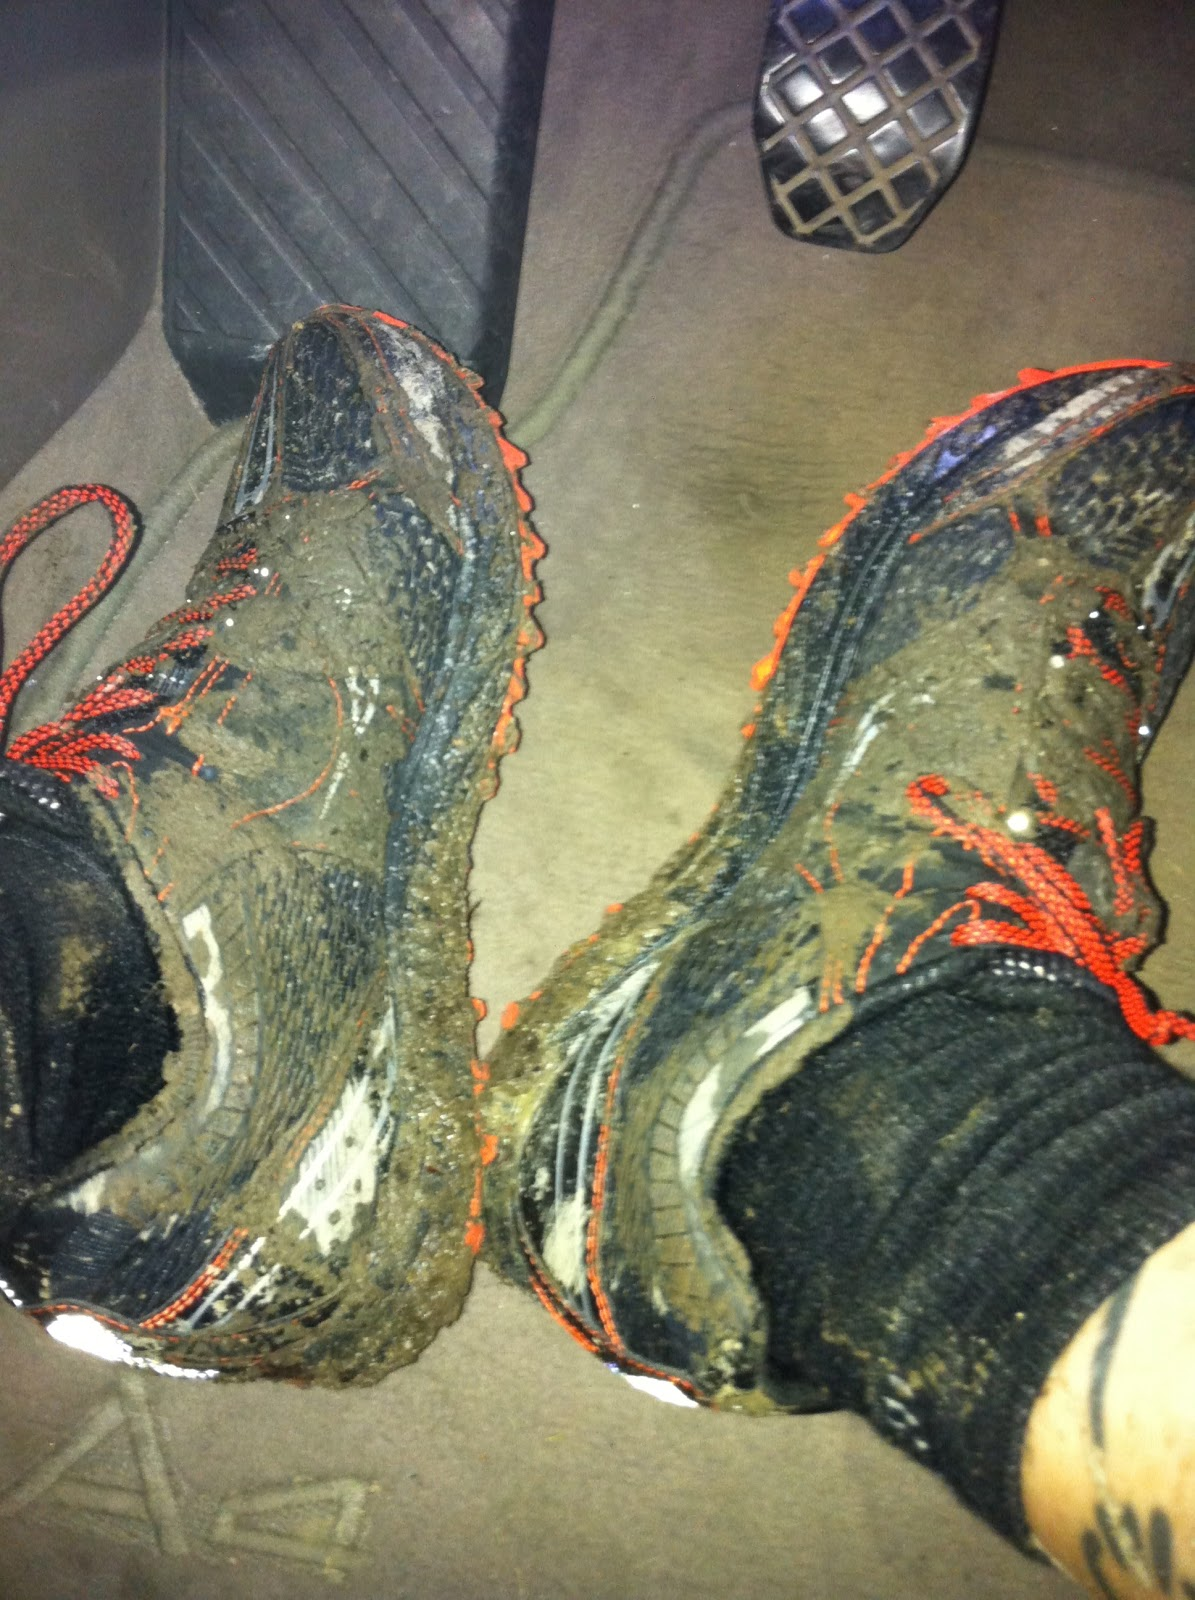 how to clean your shoes after a mud run